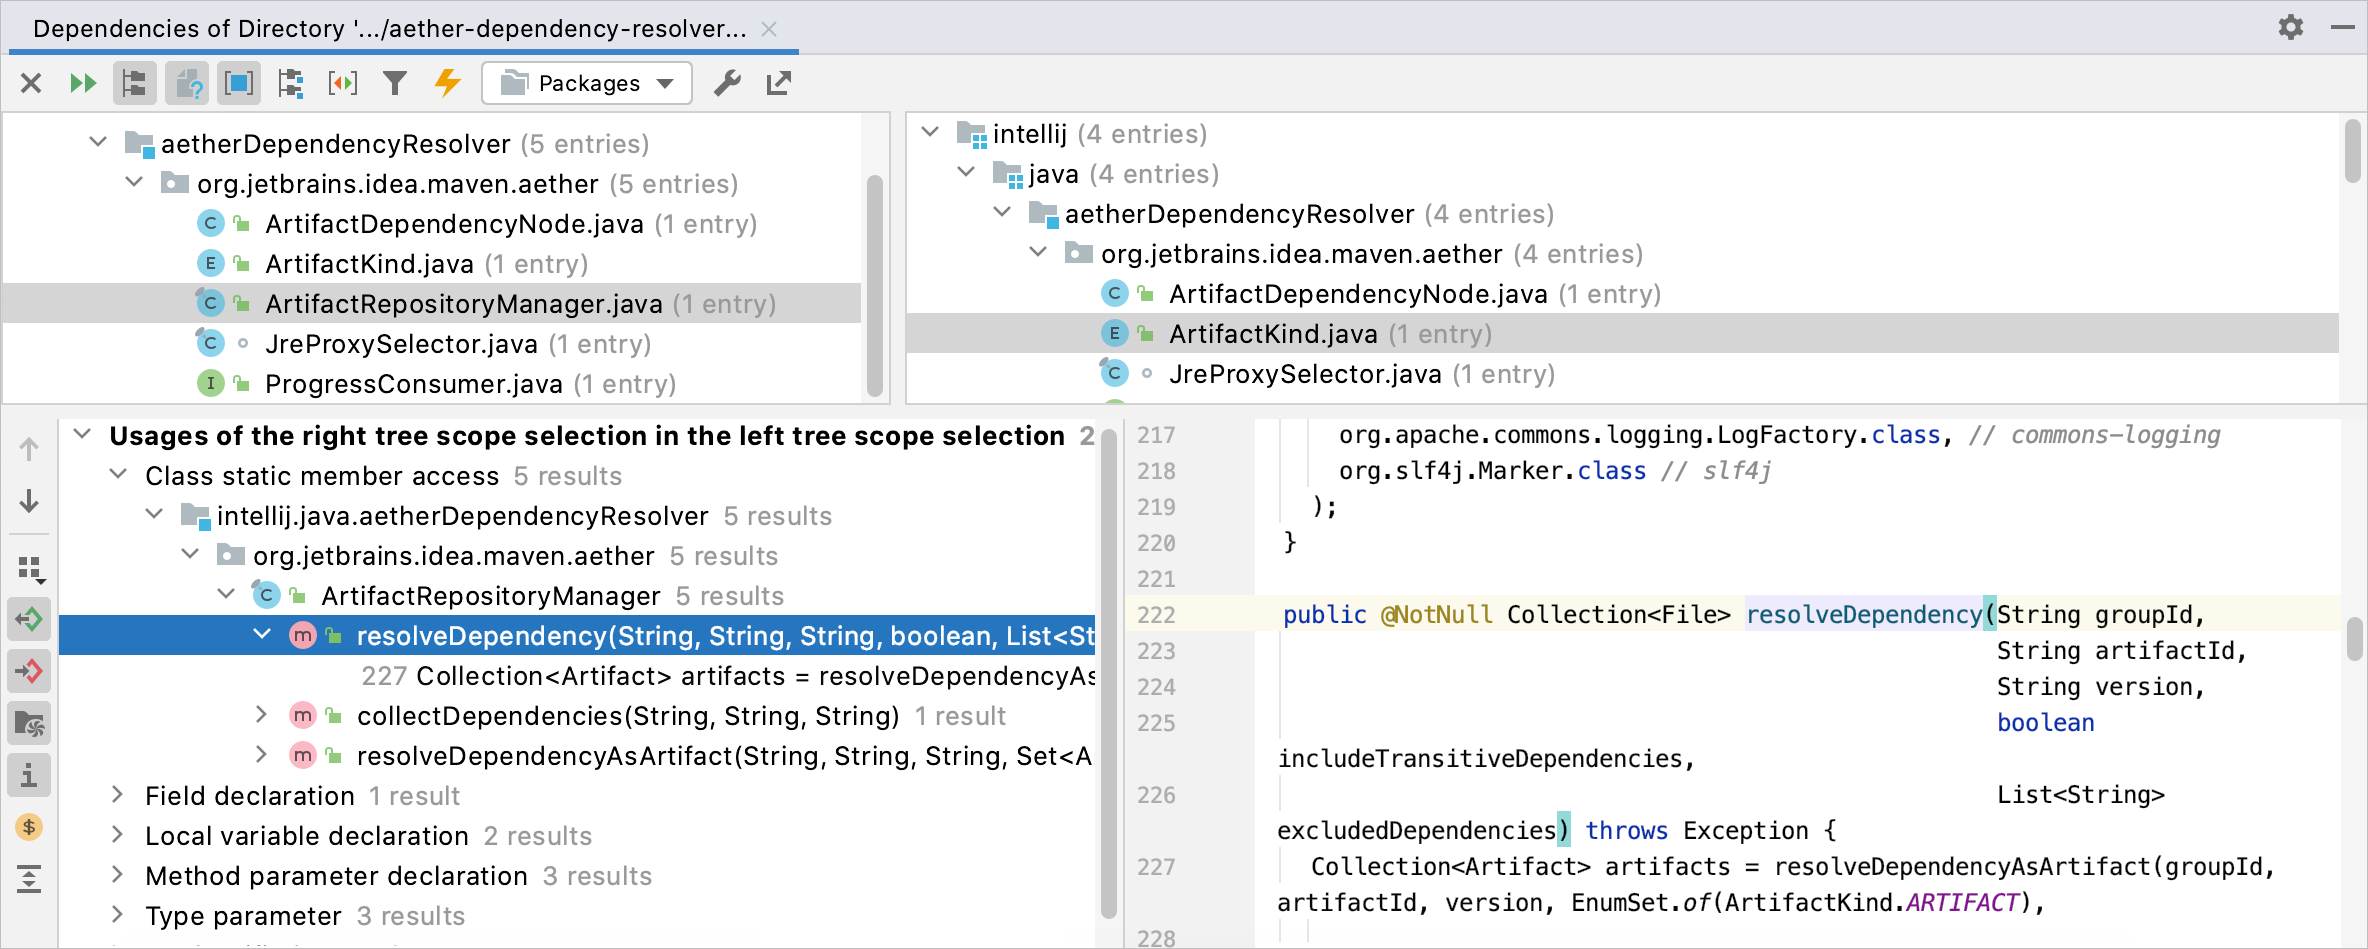 Dependencies analysis results shown in the tool window